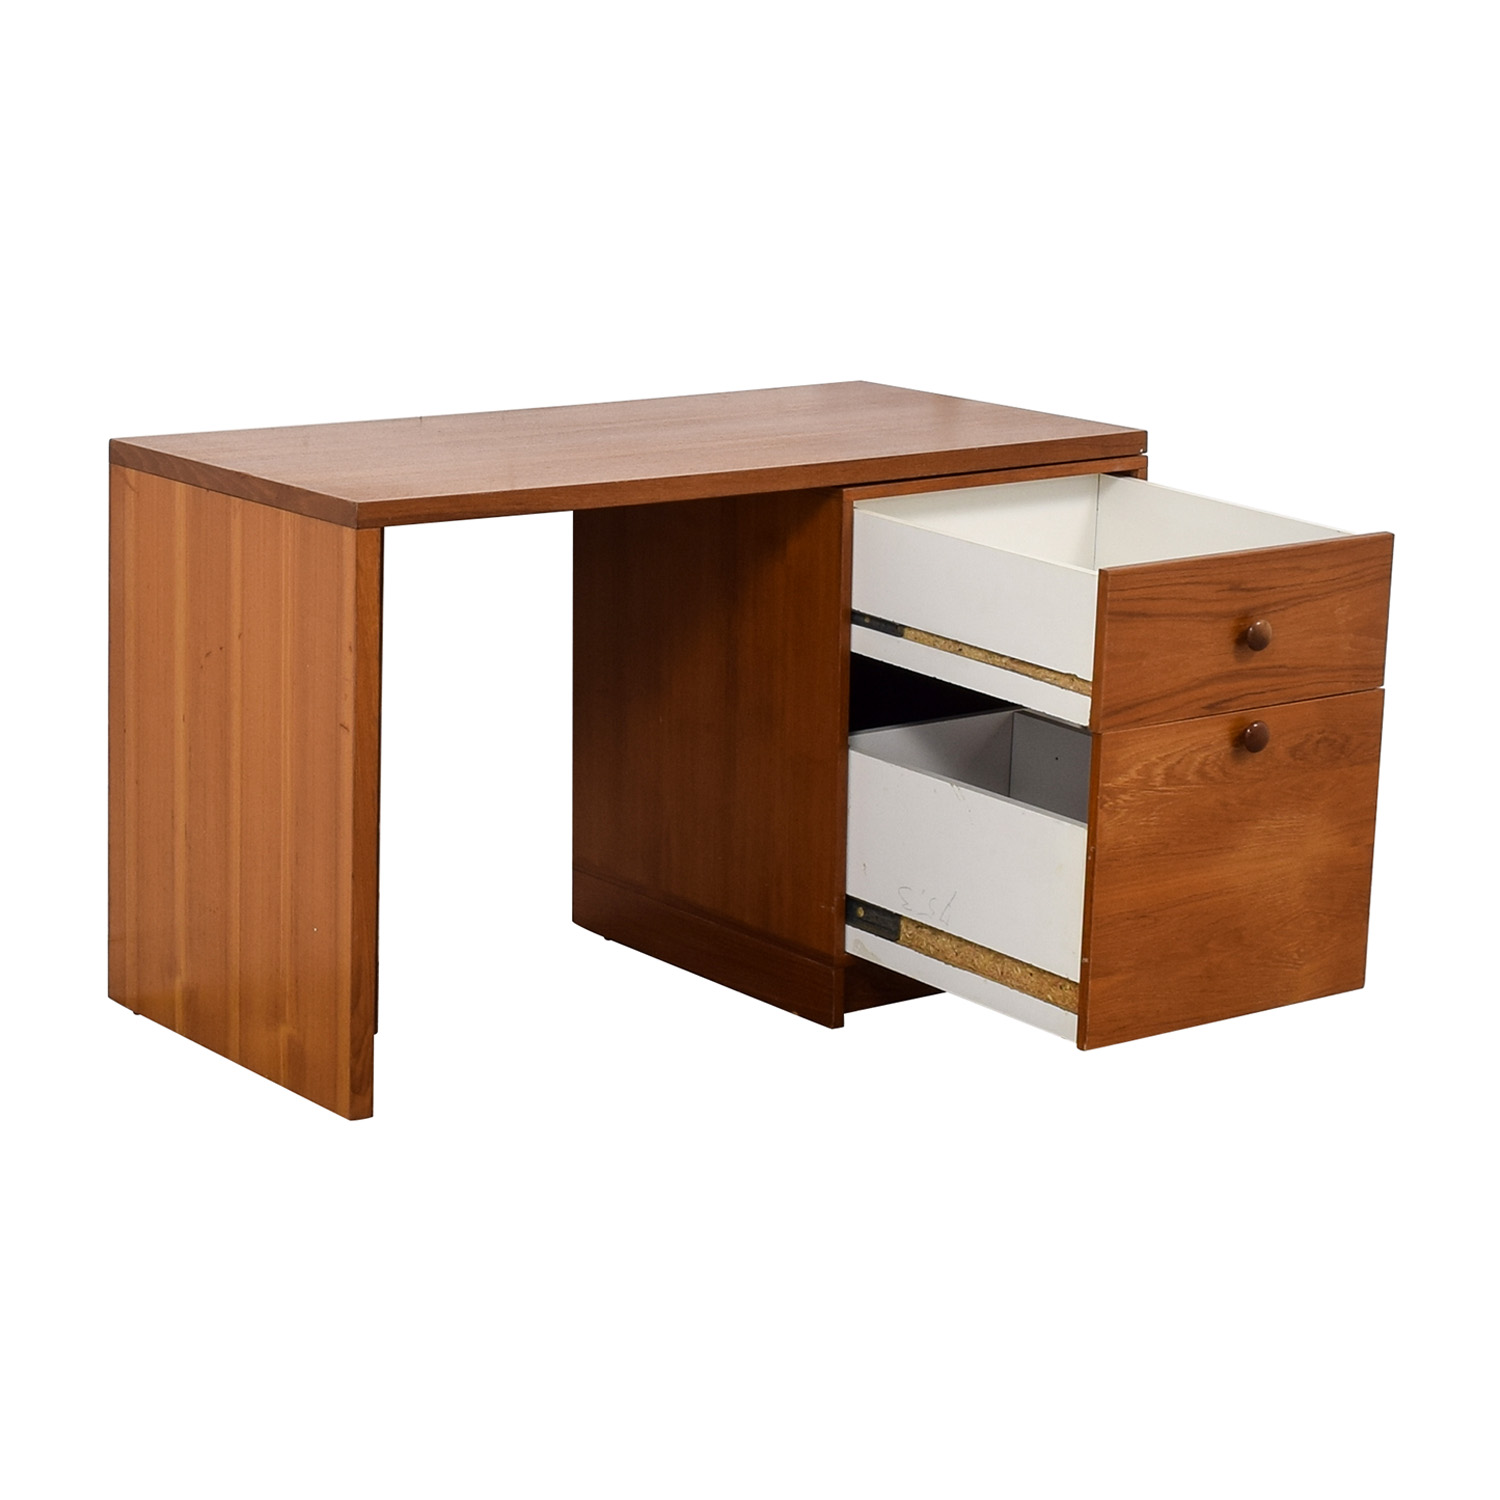 Two-Drawer Desk brown